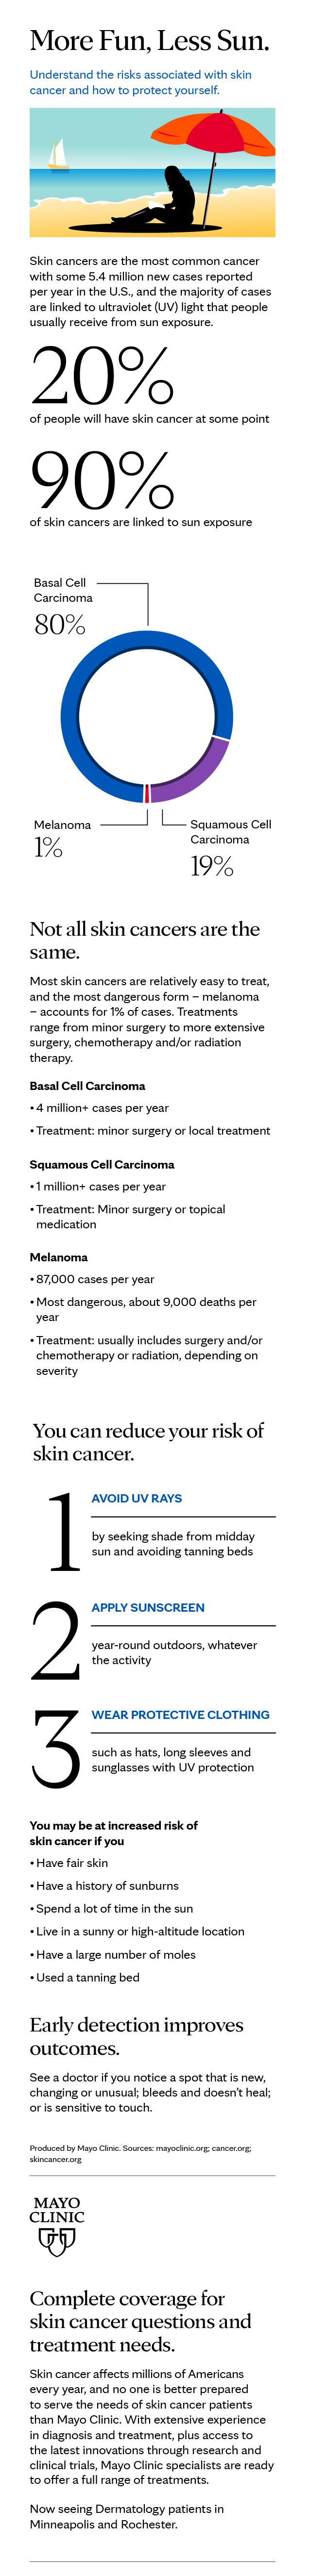 Infographic for skin cancers